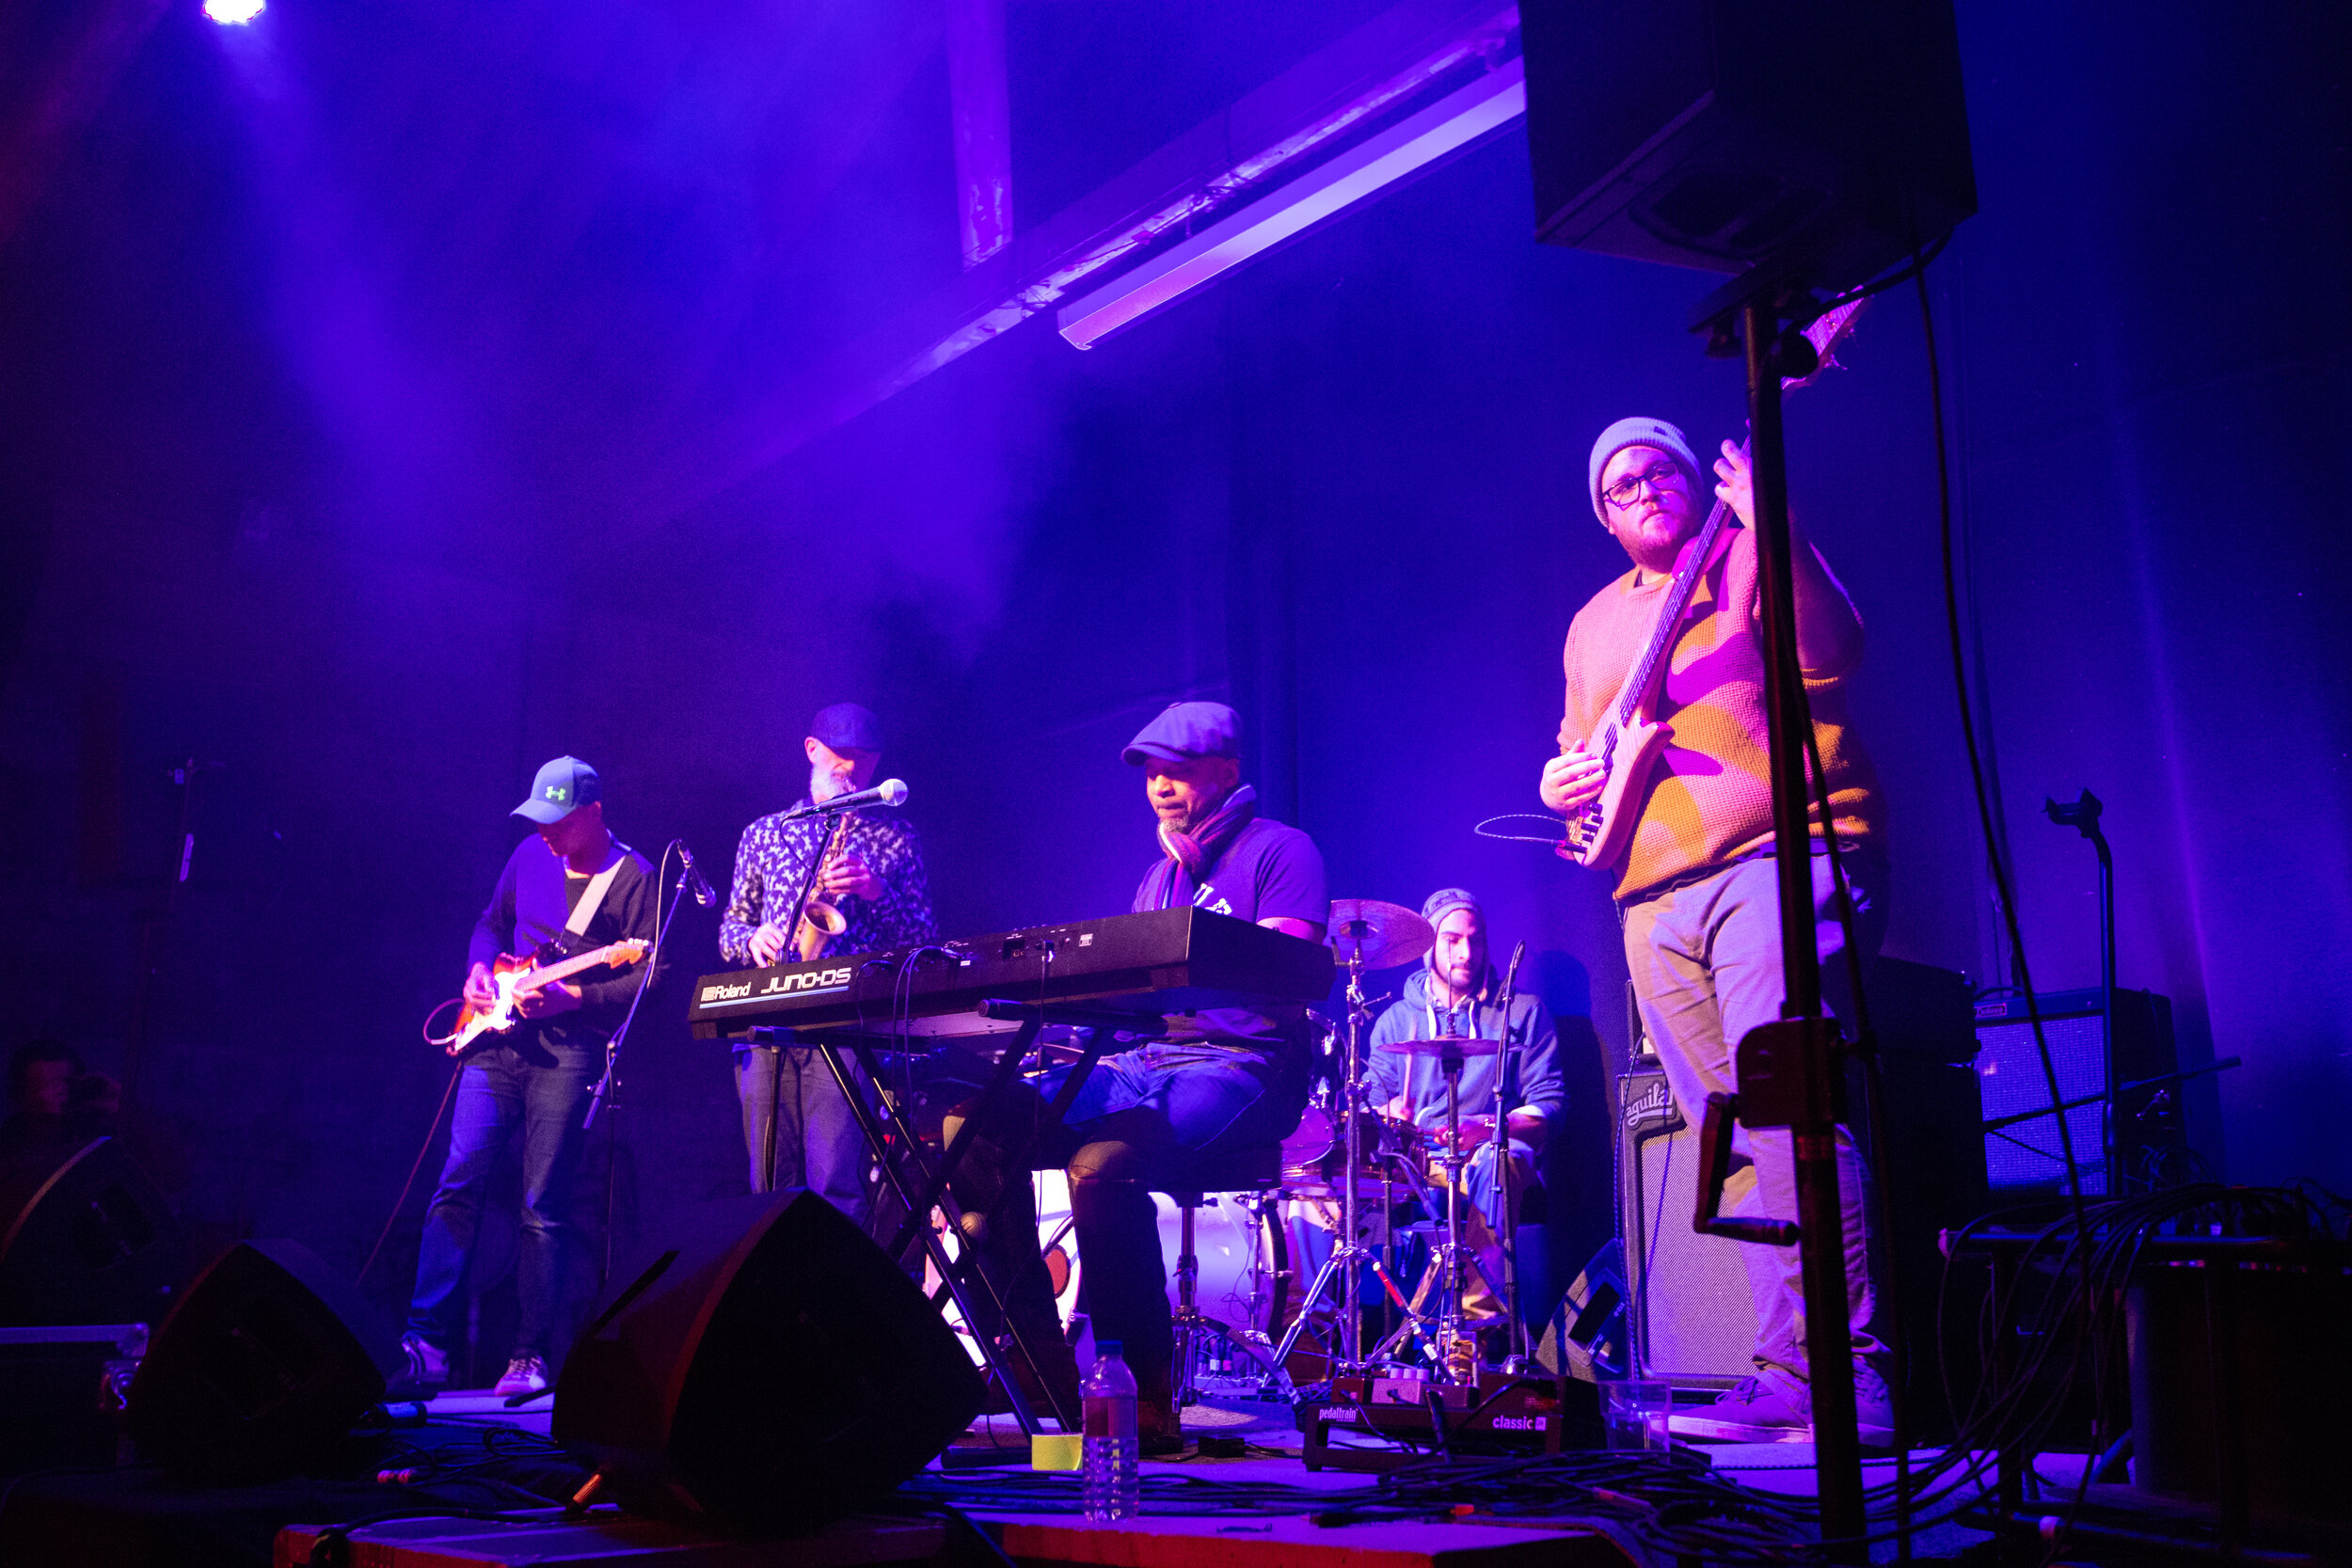 2018-12-15 Funk-in-Session at the Goods Shed Stroud (4 of 40).jpg